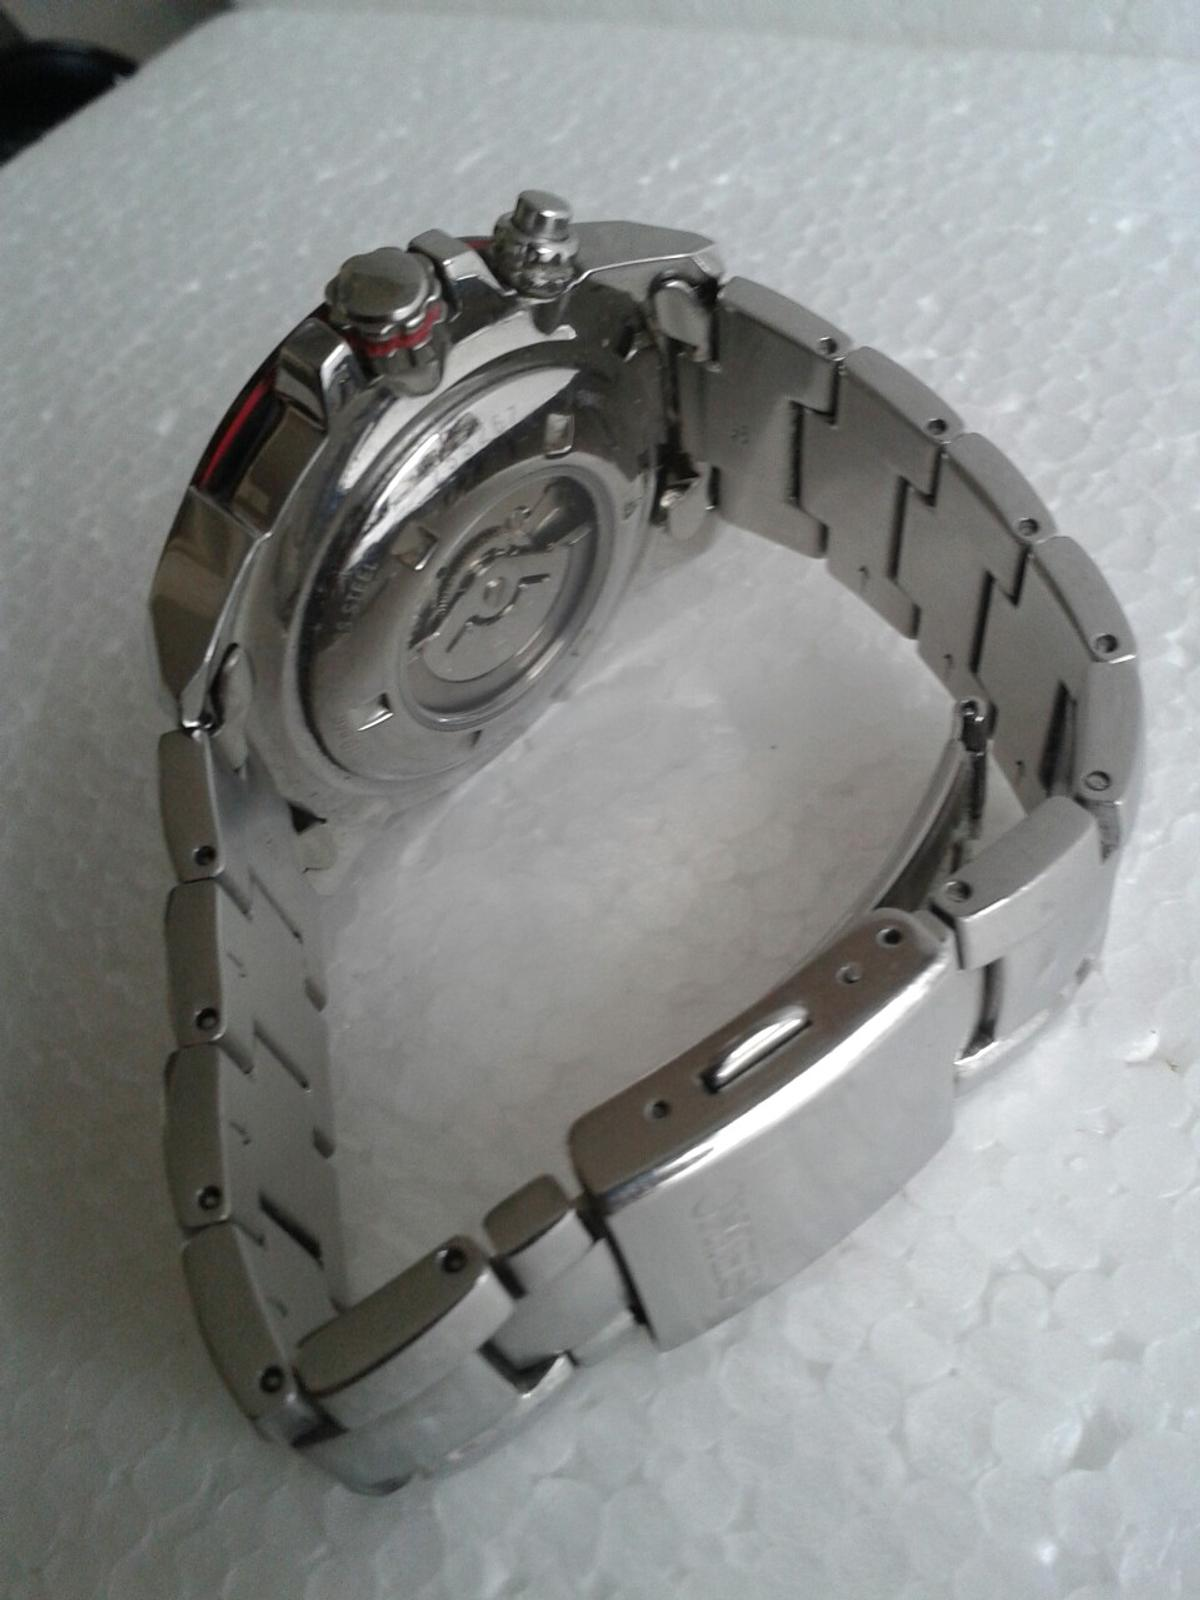 Seiko kinetic 5m62 divers watch in NN8 Wellingborough for £60 00 for